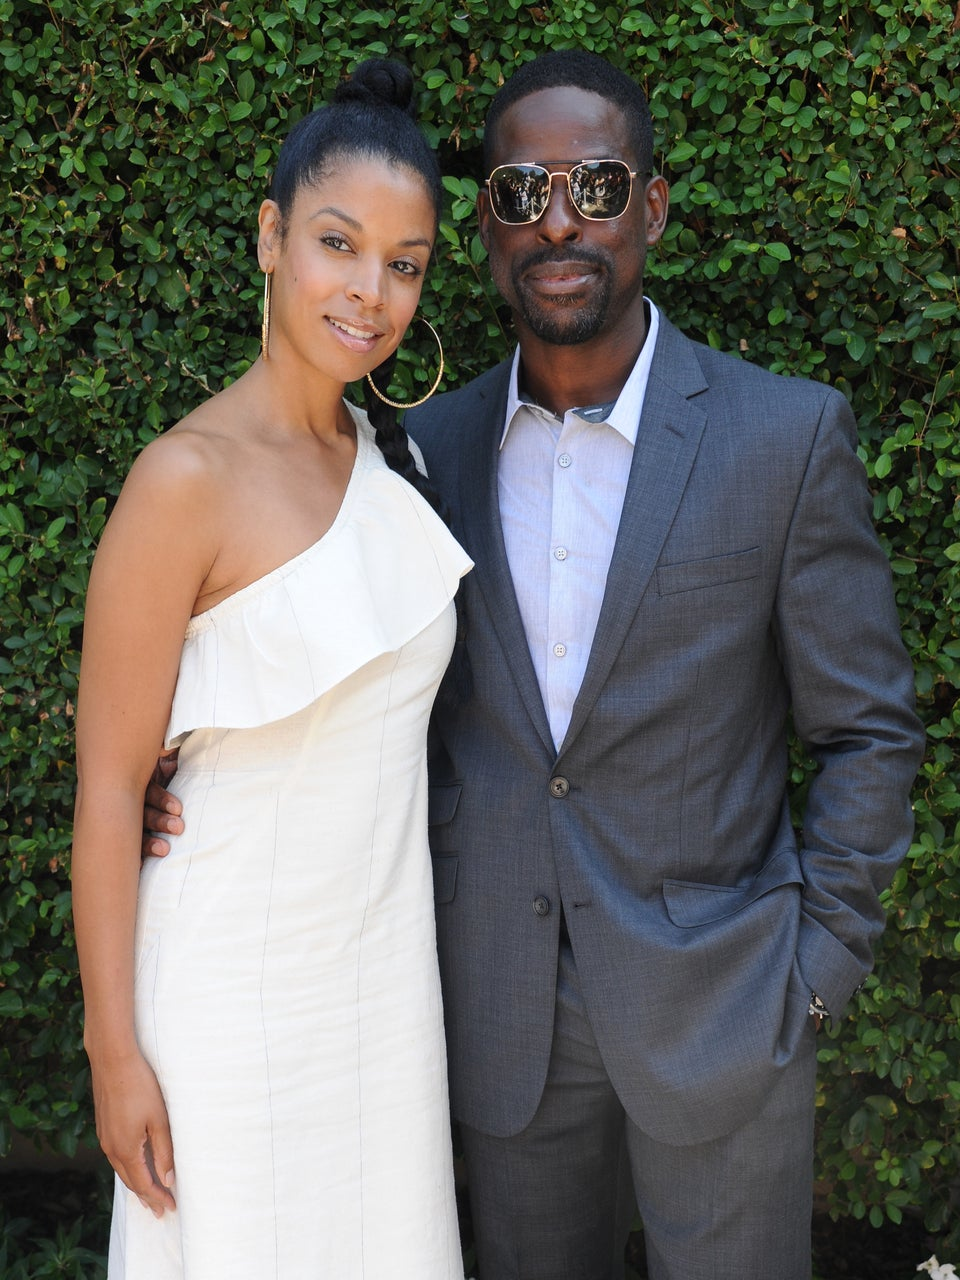 We Can't Stop Watching 'This Is Us' Star Sterling K. Brown and His Onscreen Wife Susan Kelechi Watson Take On #TheShiggyChallenge